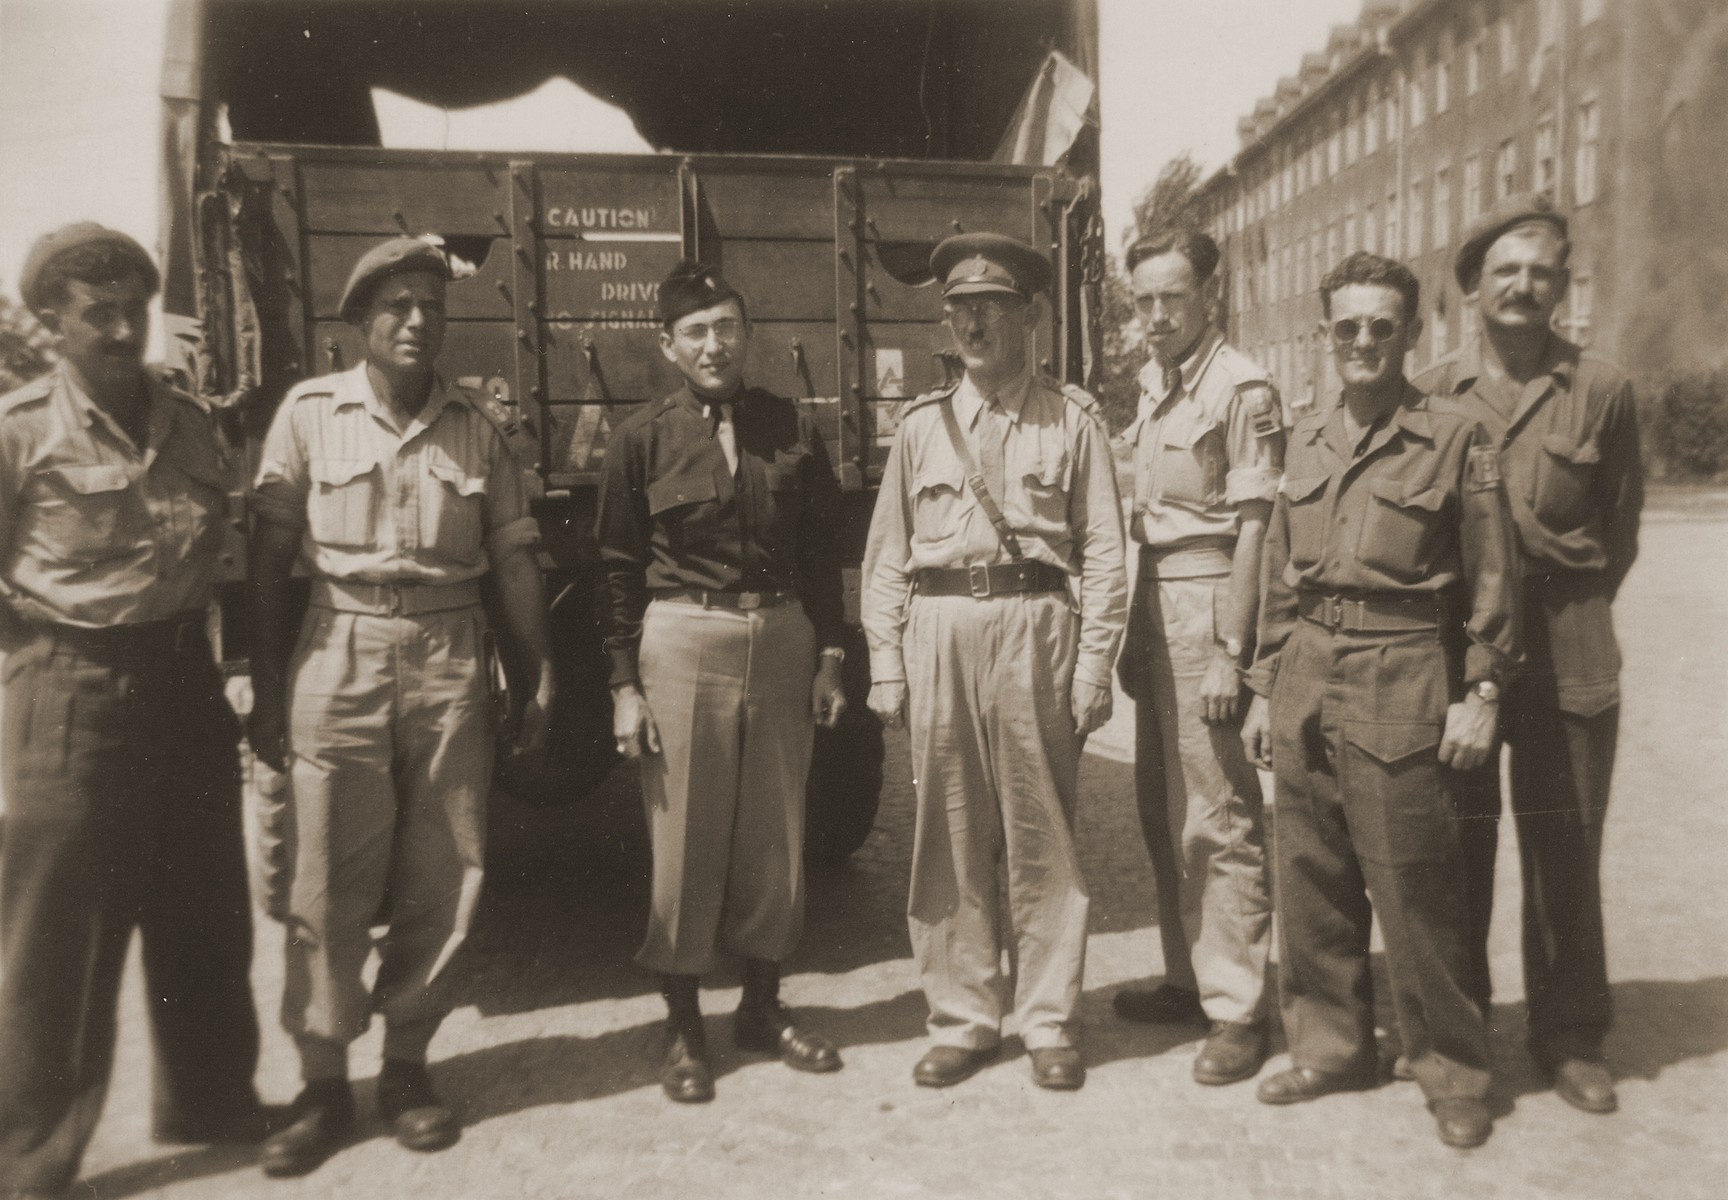 Members of the Jewish Brigade on an official visit to a DP camp in Germany.  The donor, Joe Friedman, worked with Jewish Brigade soldiers in clandestine operations smuggling Jewish DPs posing as German nationals into the American occupation zones.